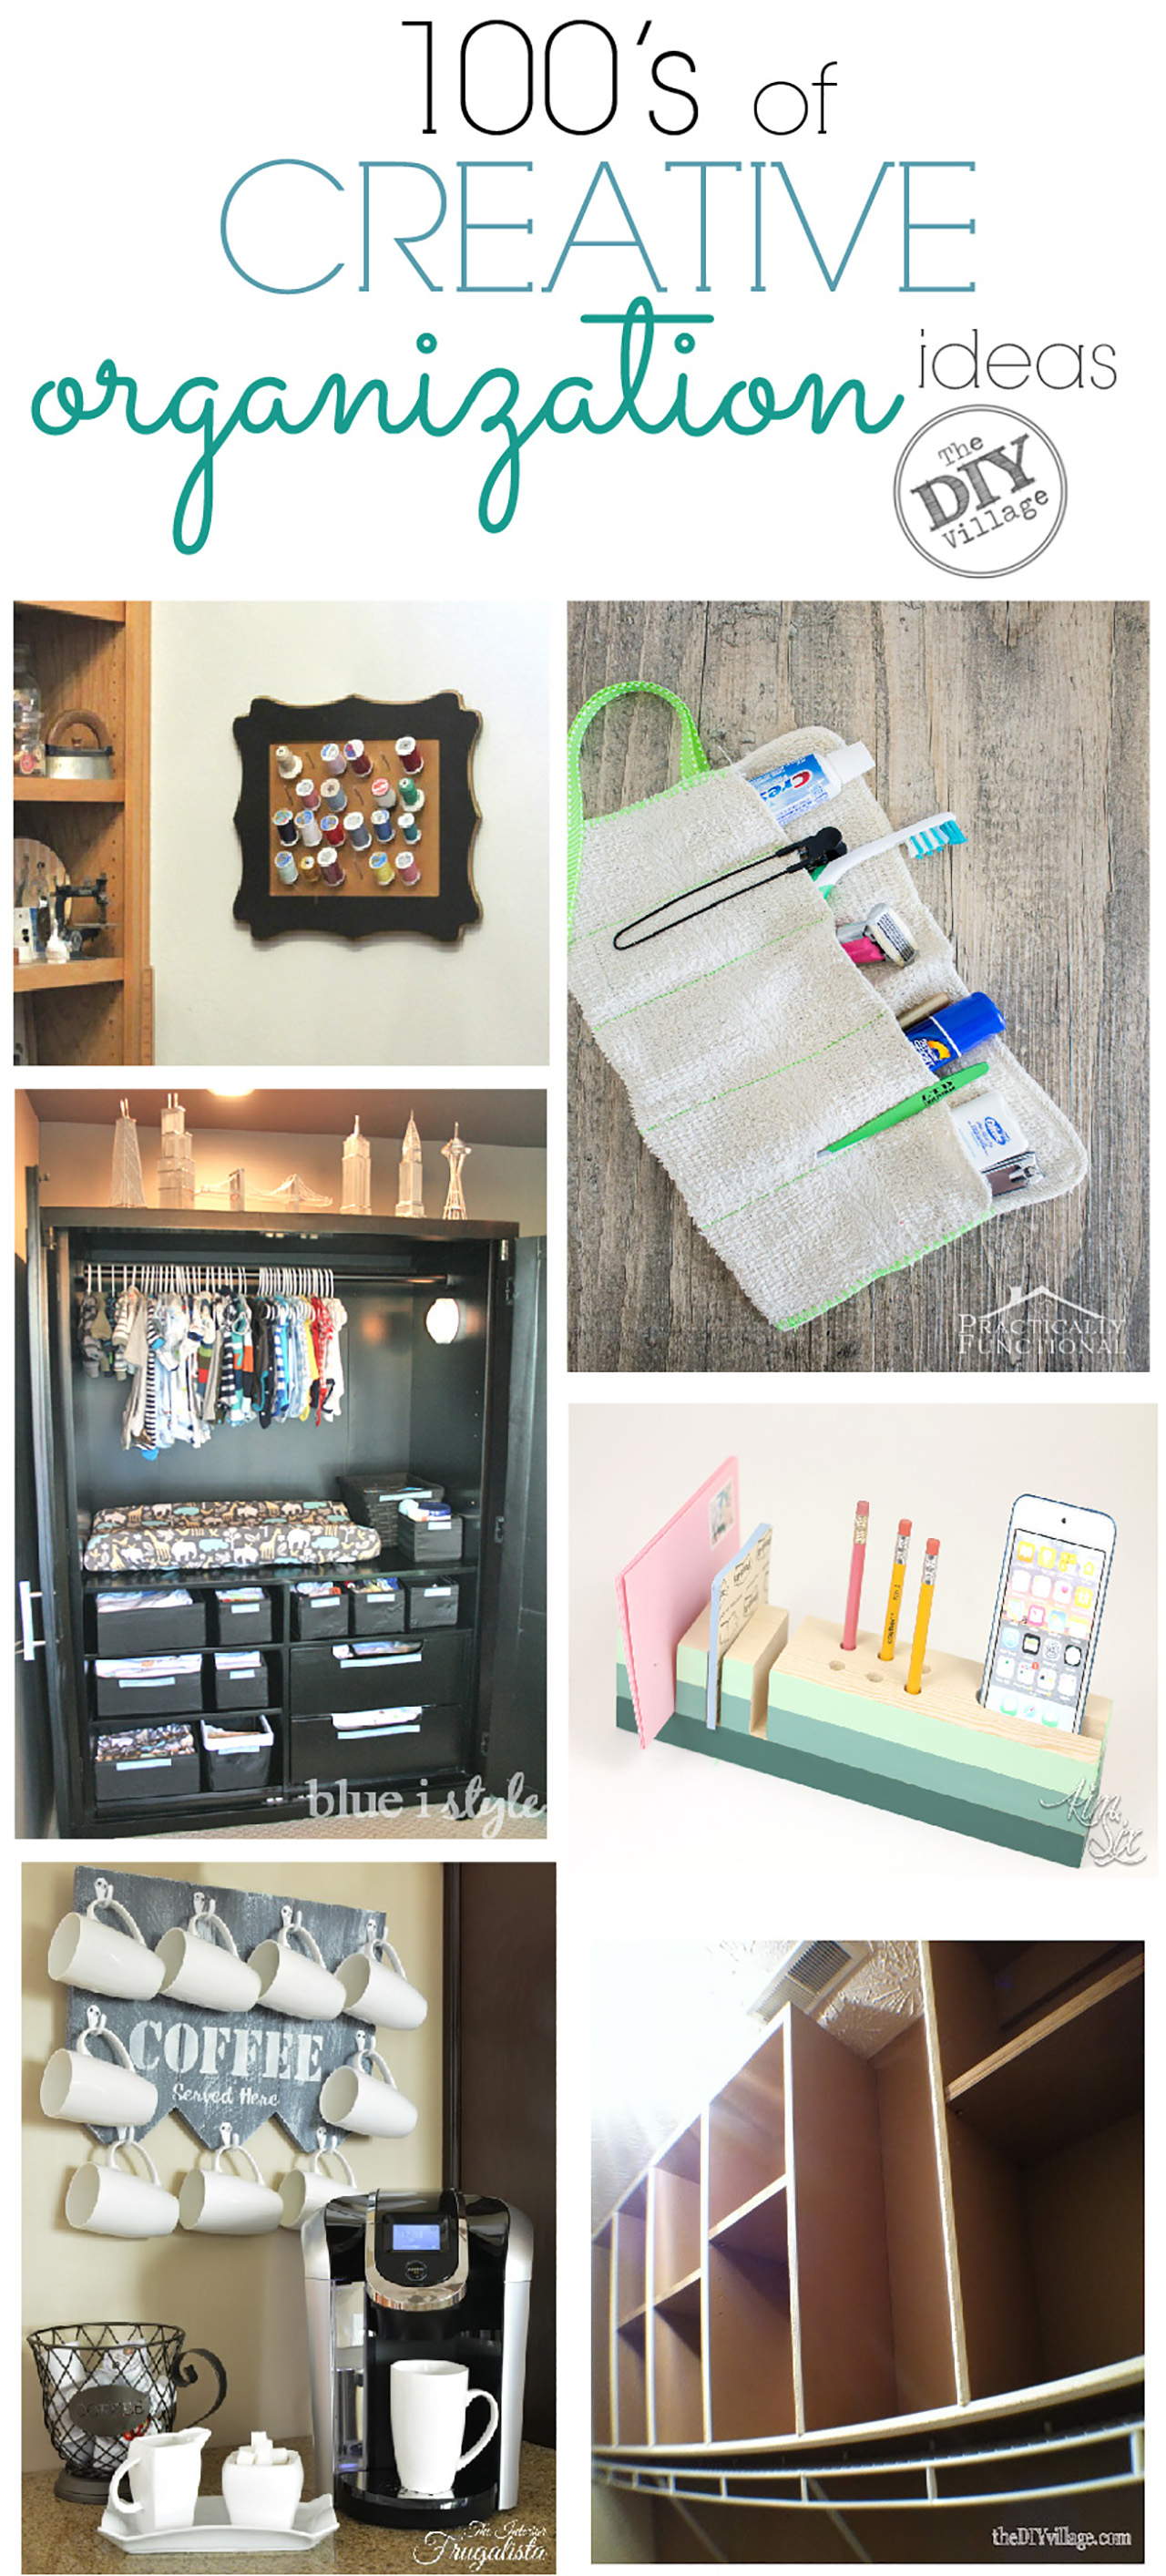 100's of creative organizational ideas for your home. So many great ideas,  I can